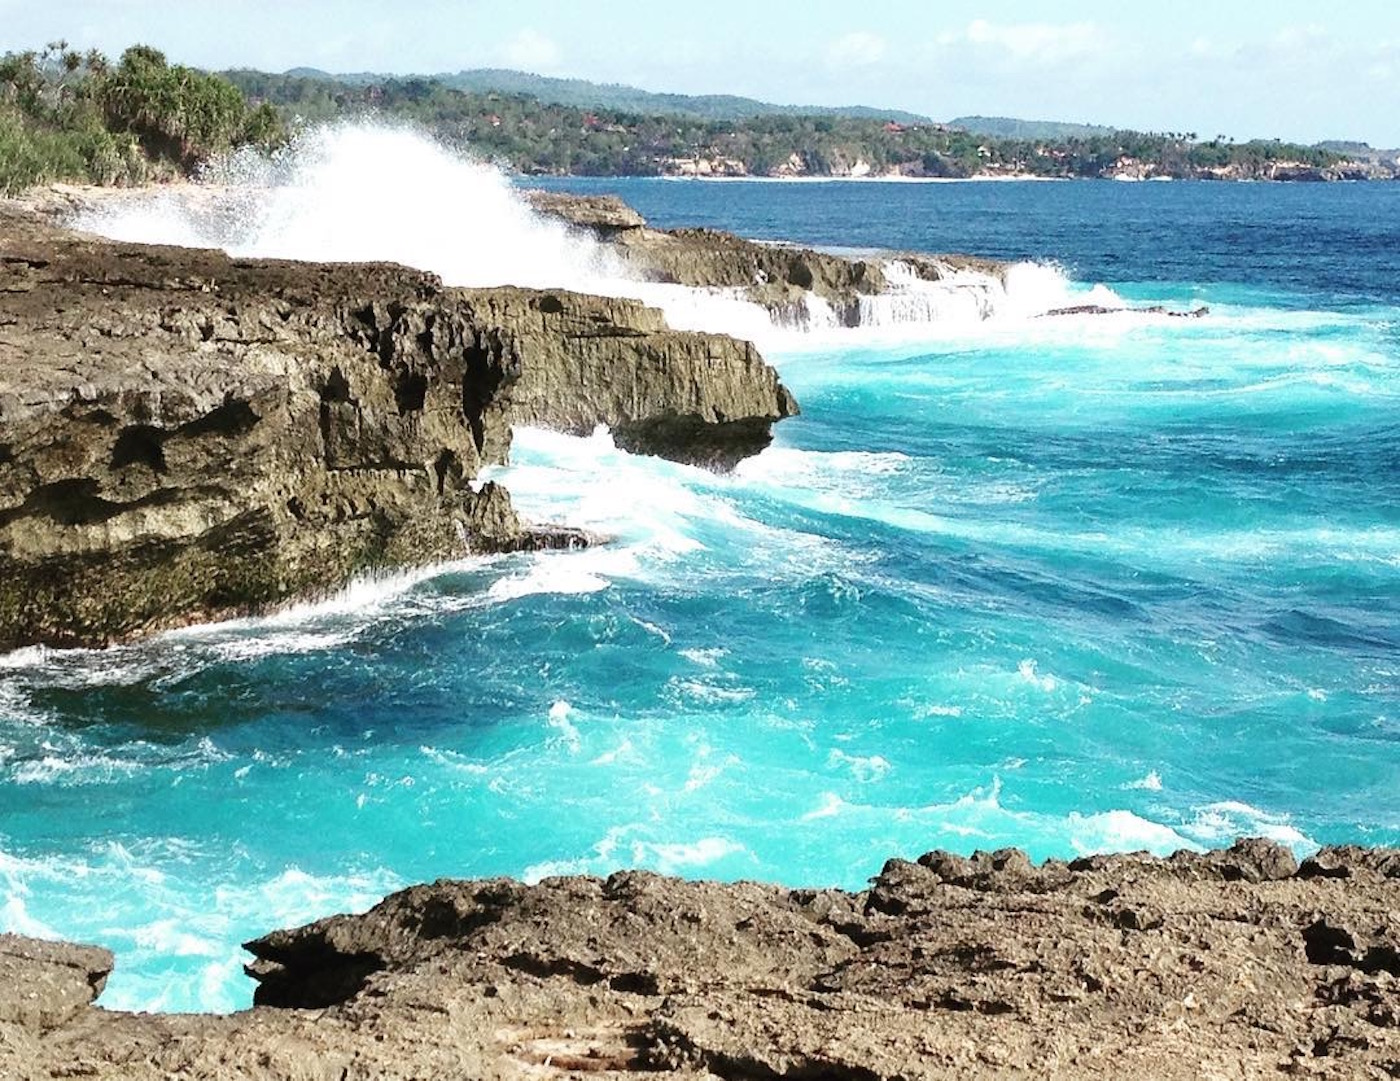 Wild ocean meets rugged cliff at Devil's Tear on Nusa Lembongan in Bali, Indonesia